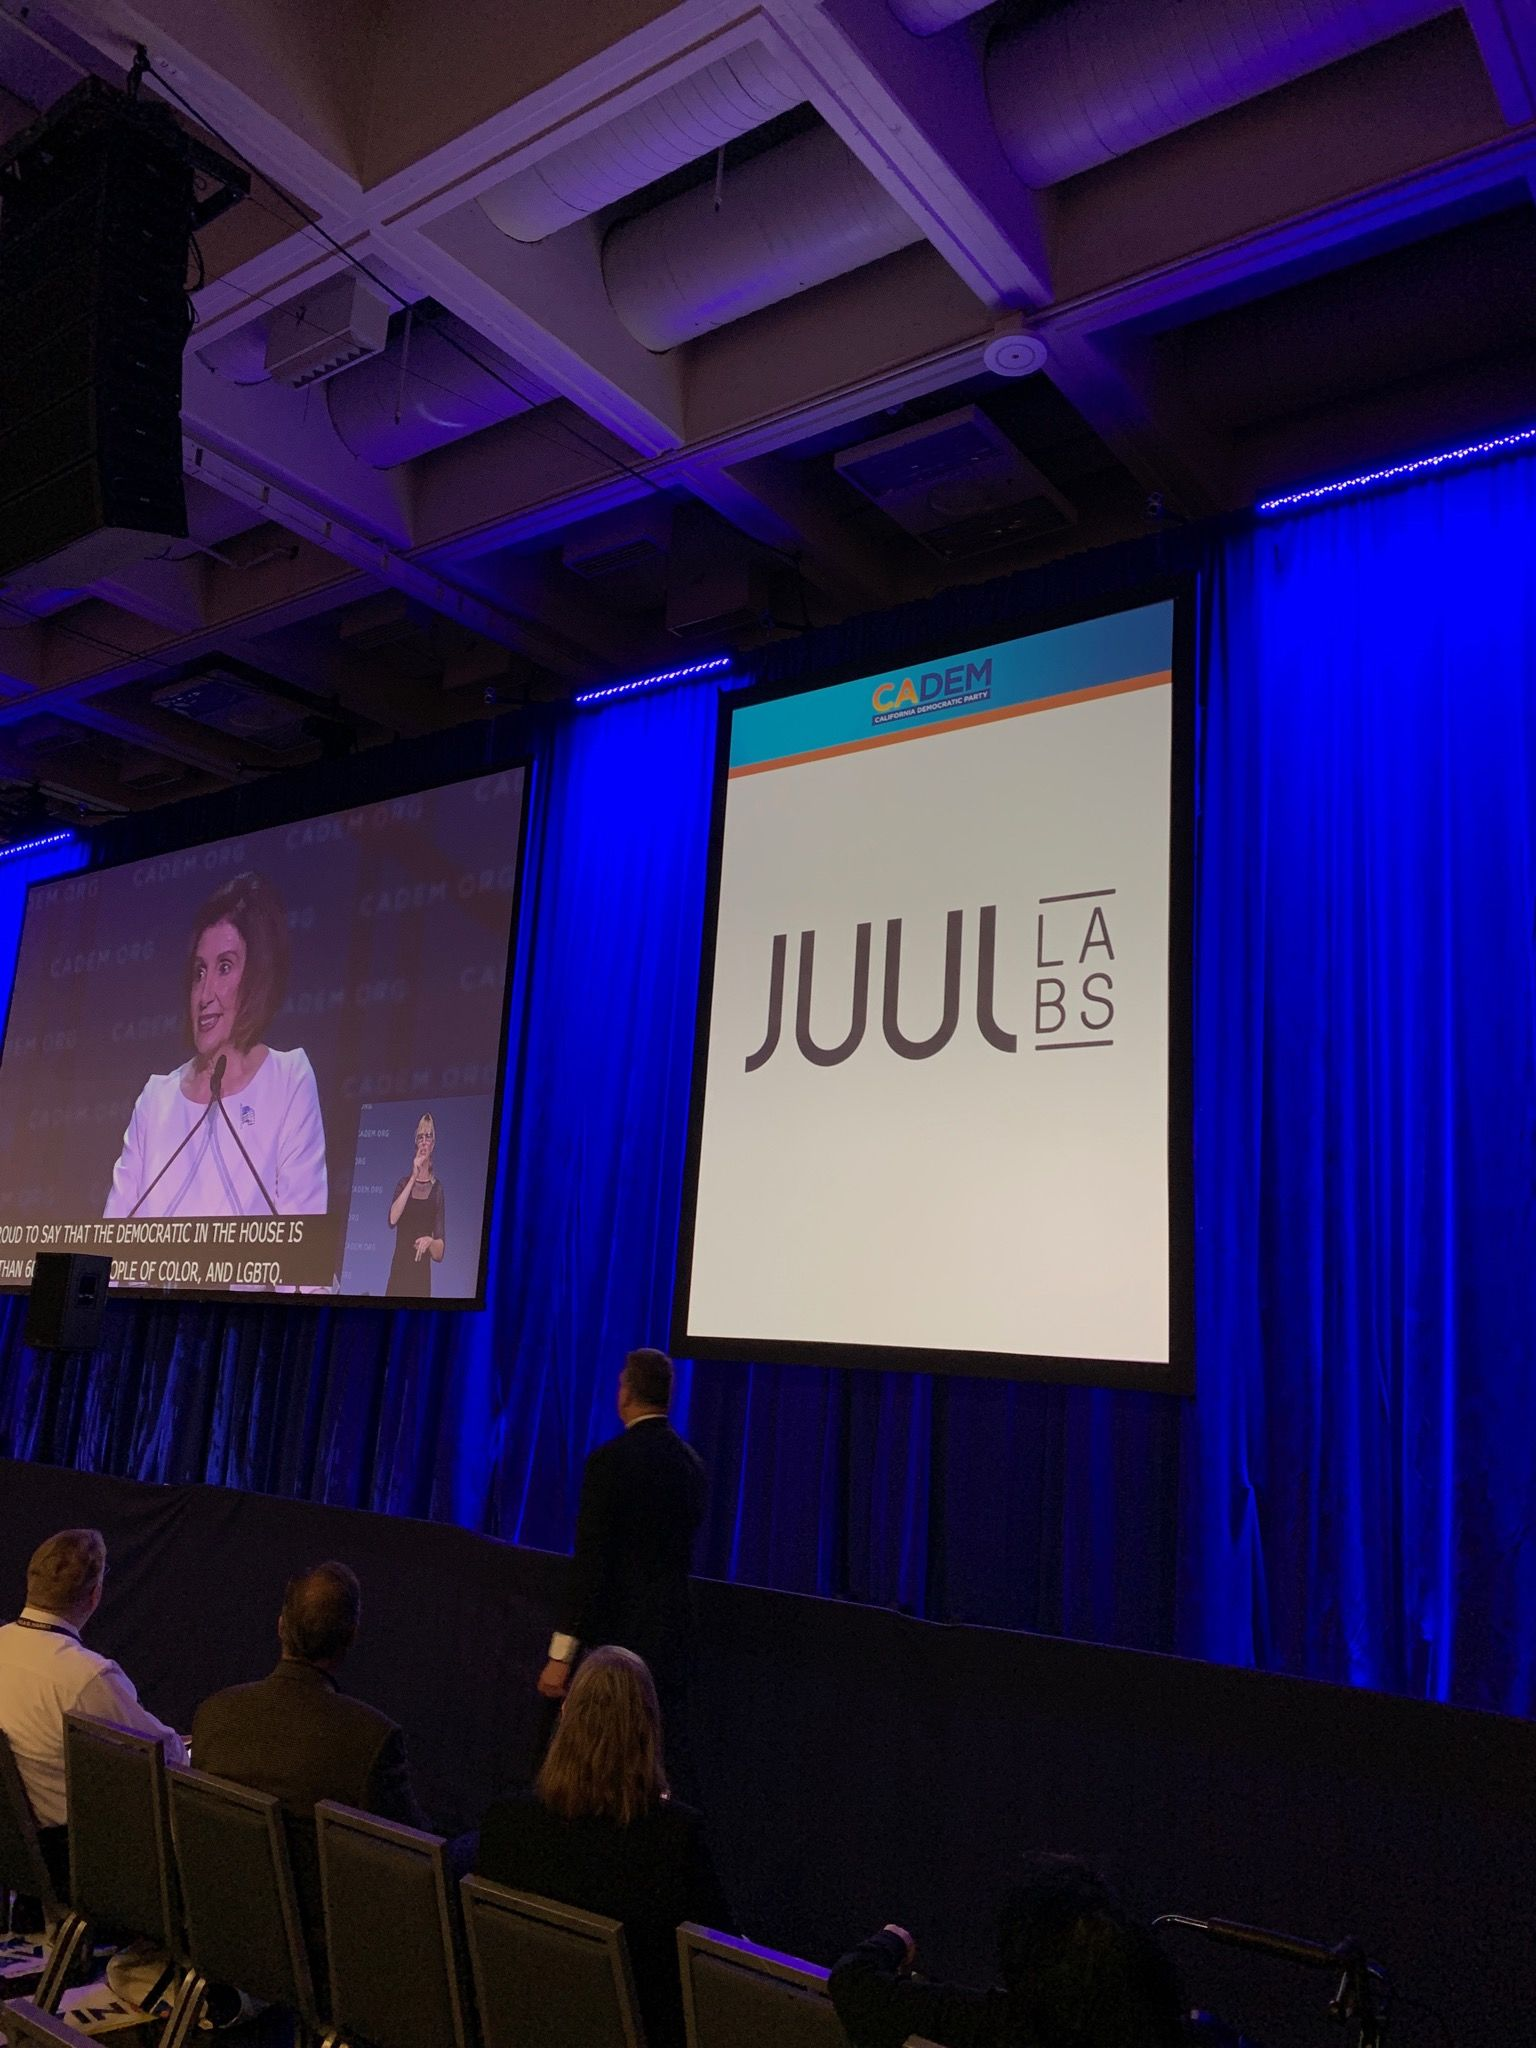 California Democrats under fire after vaping company Juul sponsors convention